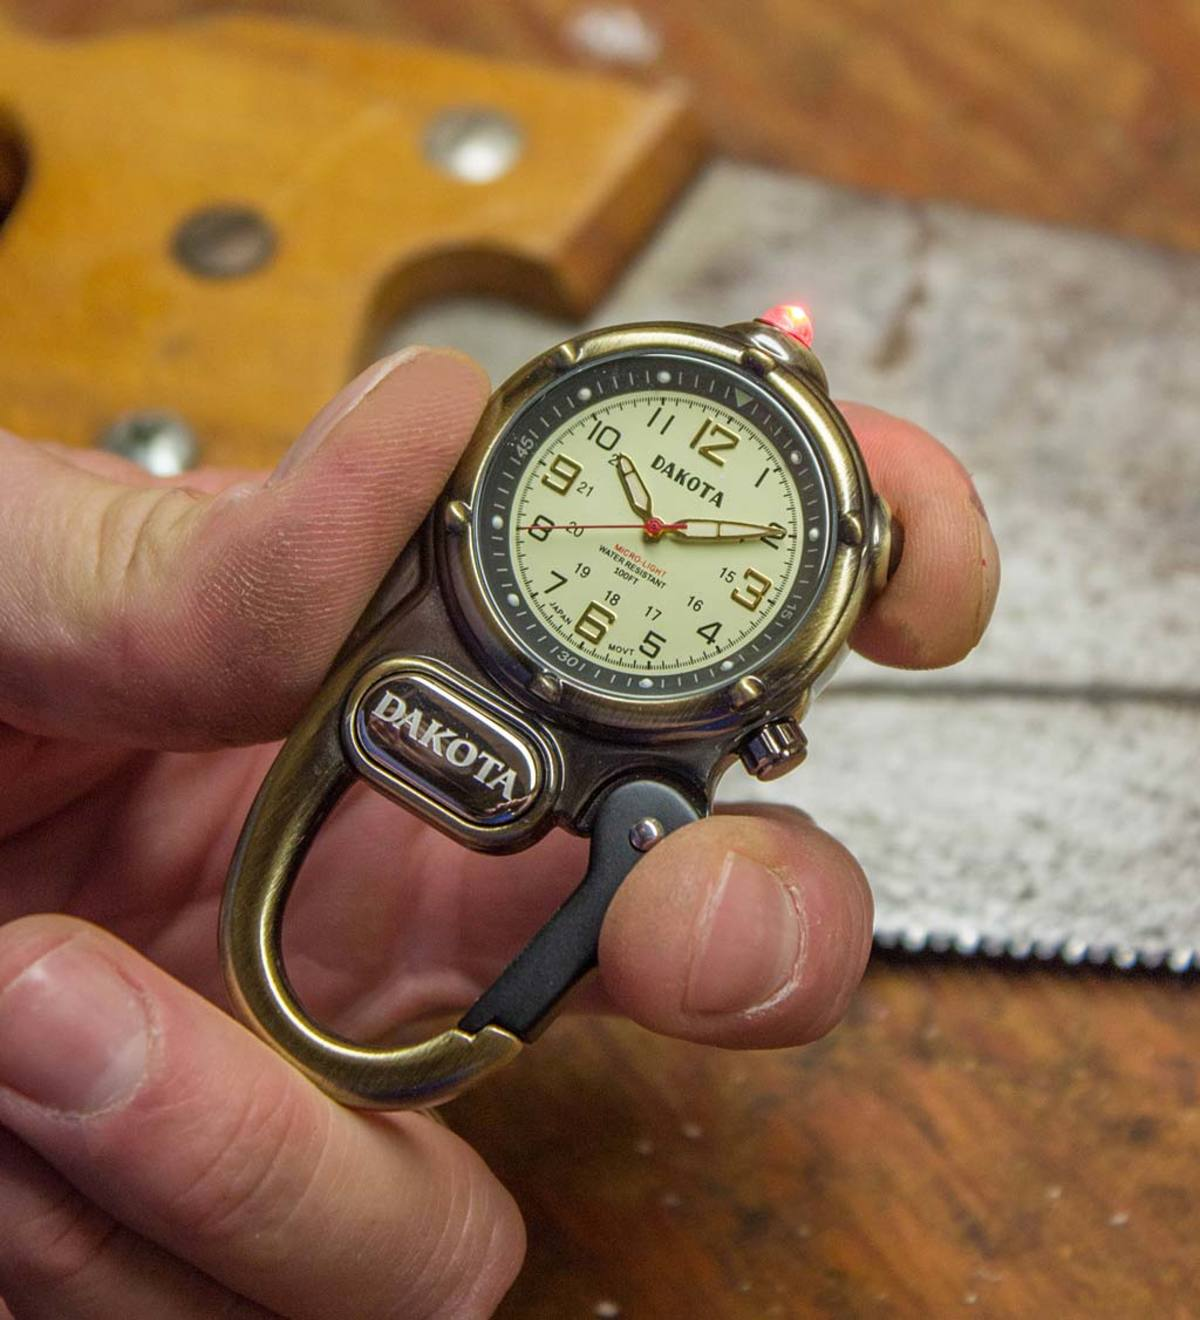 Carabiner Watch with Microlight